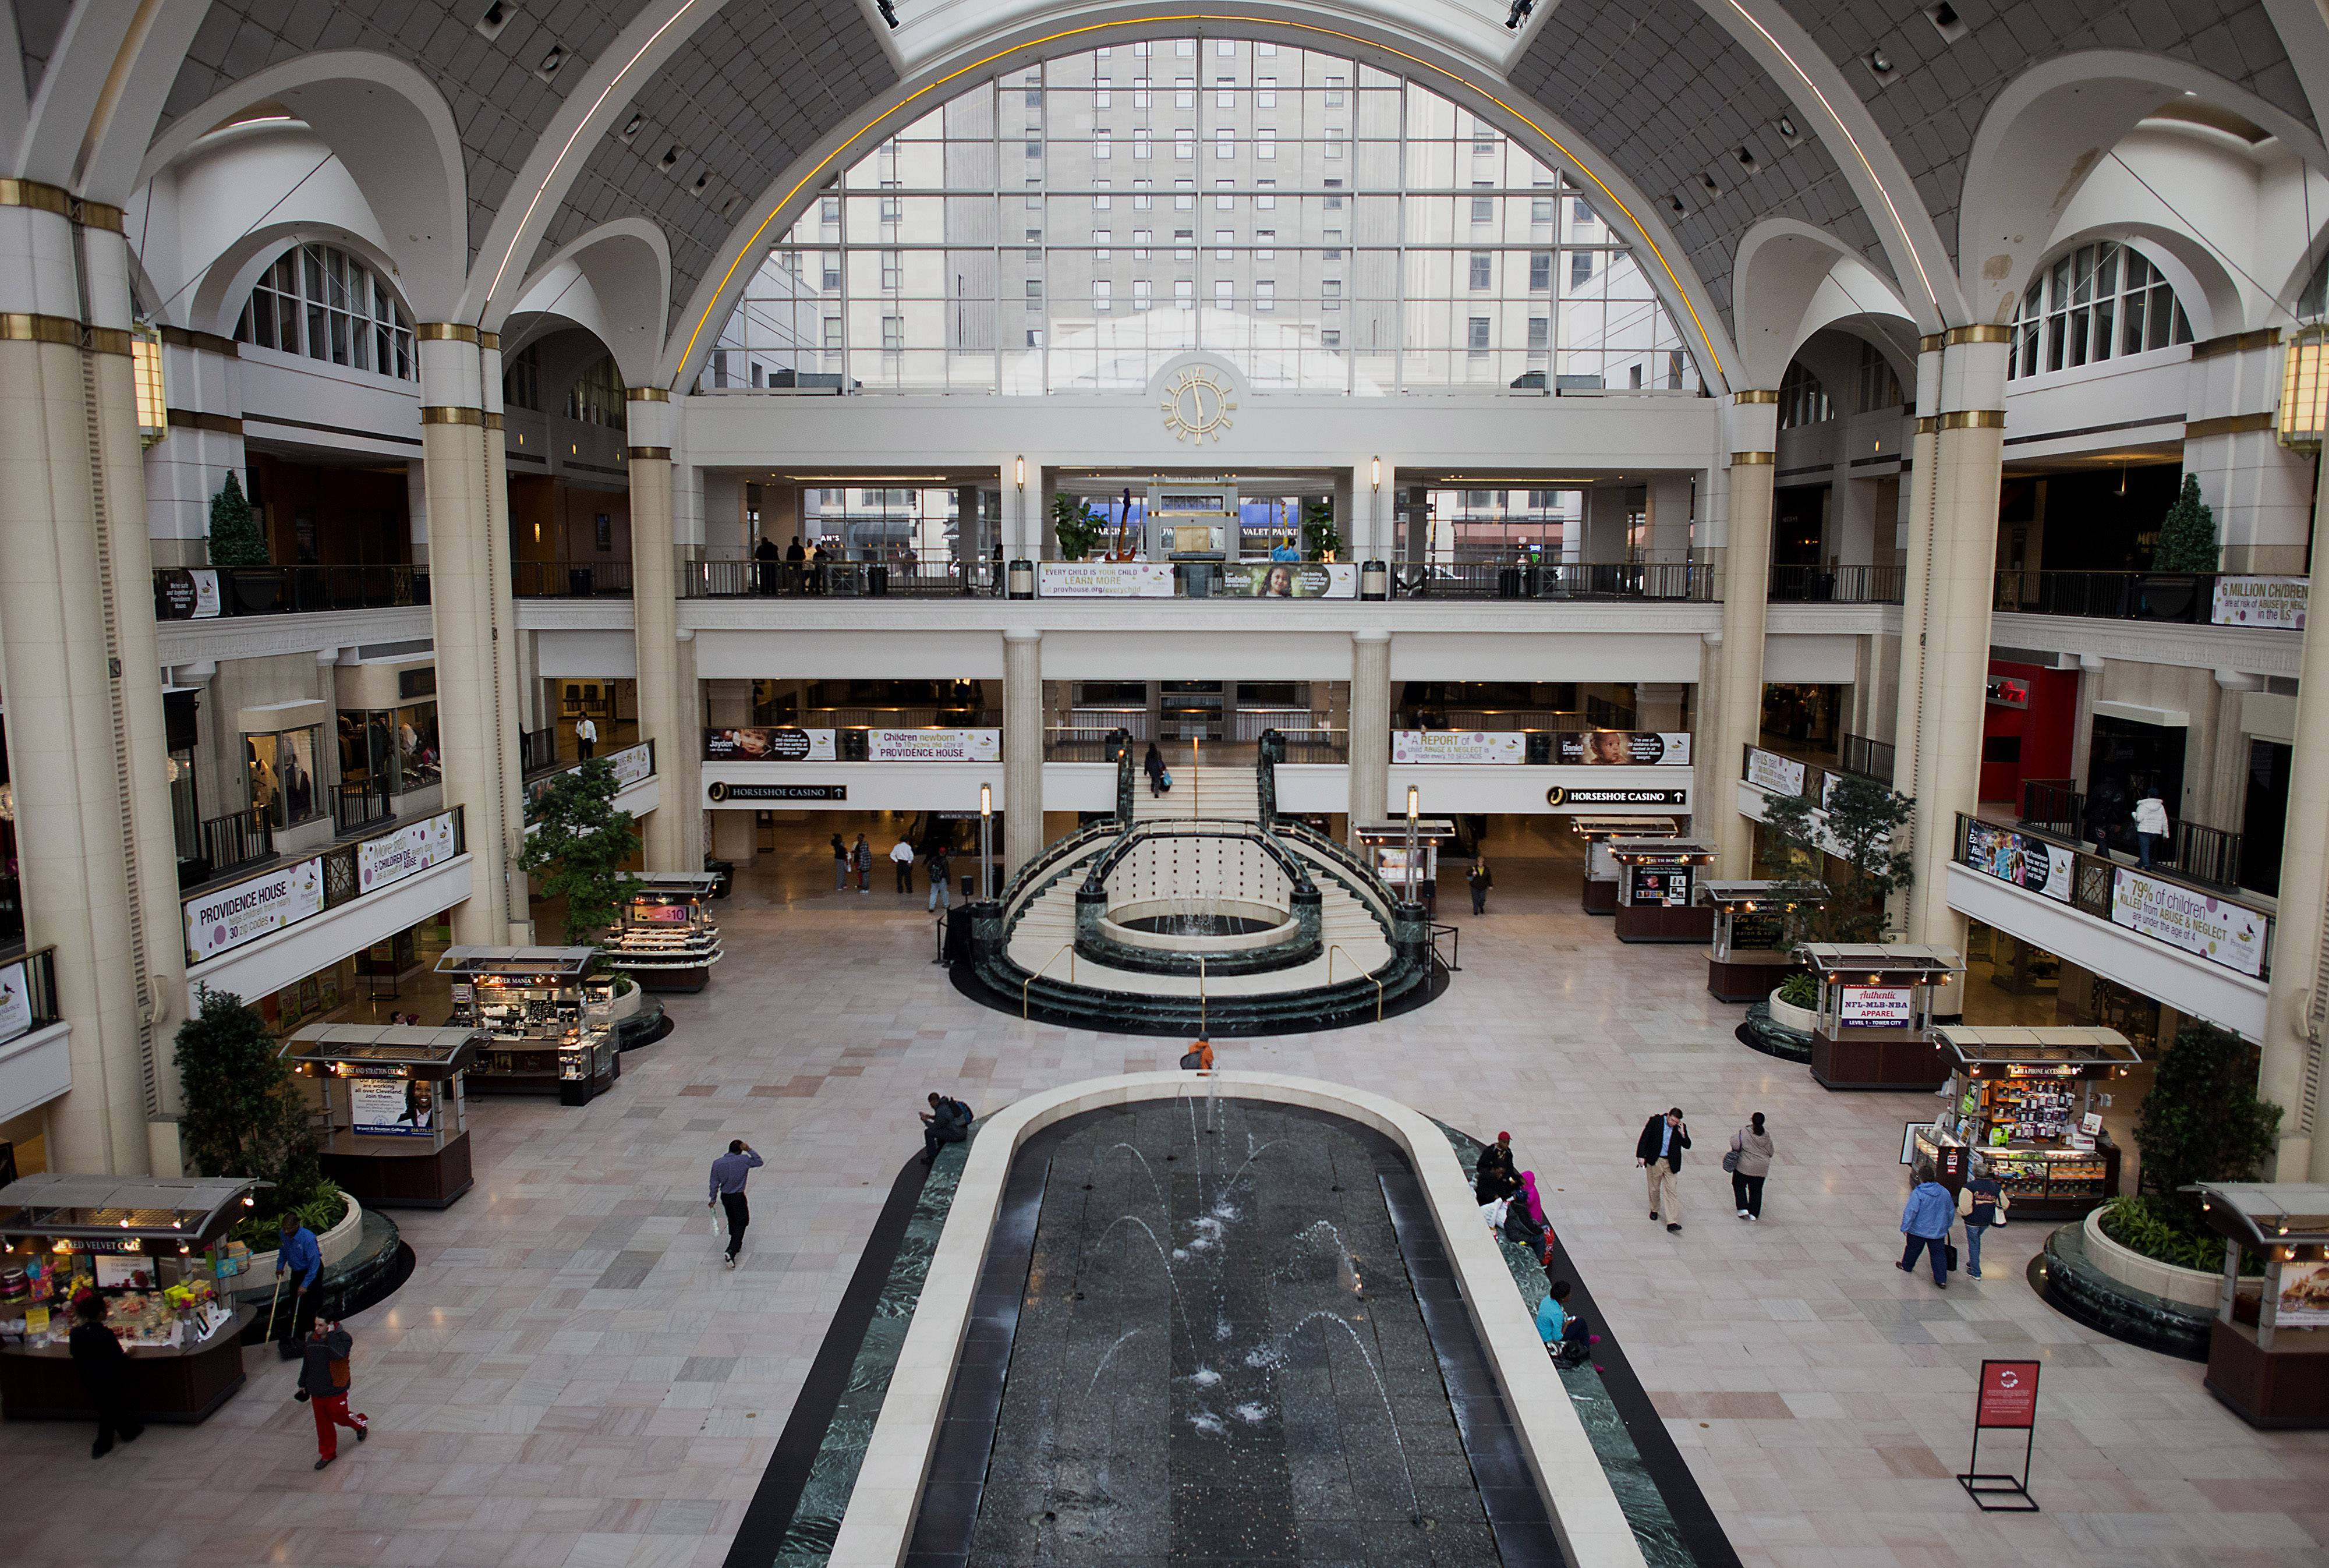 Shoppers walk through the Tower City Mall in Cleveland, Ohio, Wednesday.